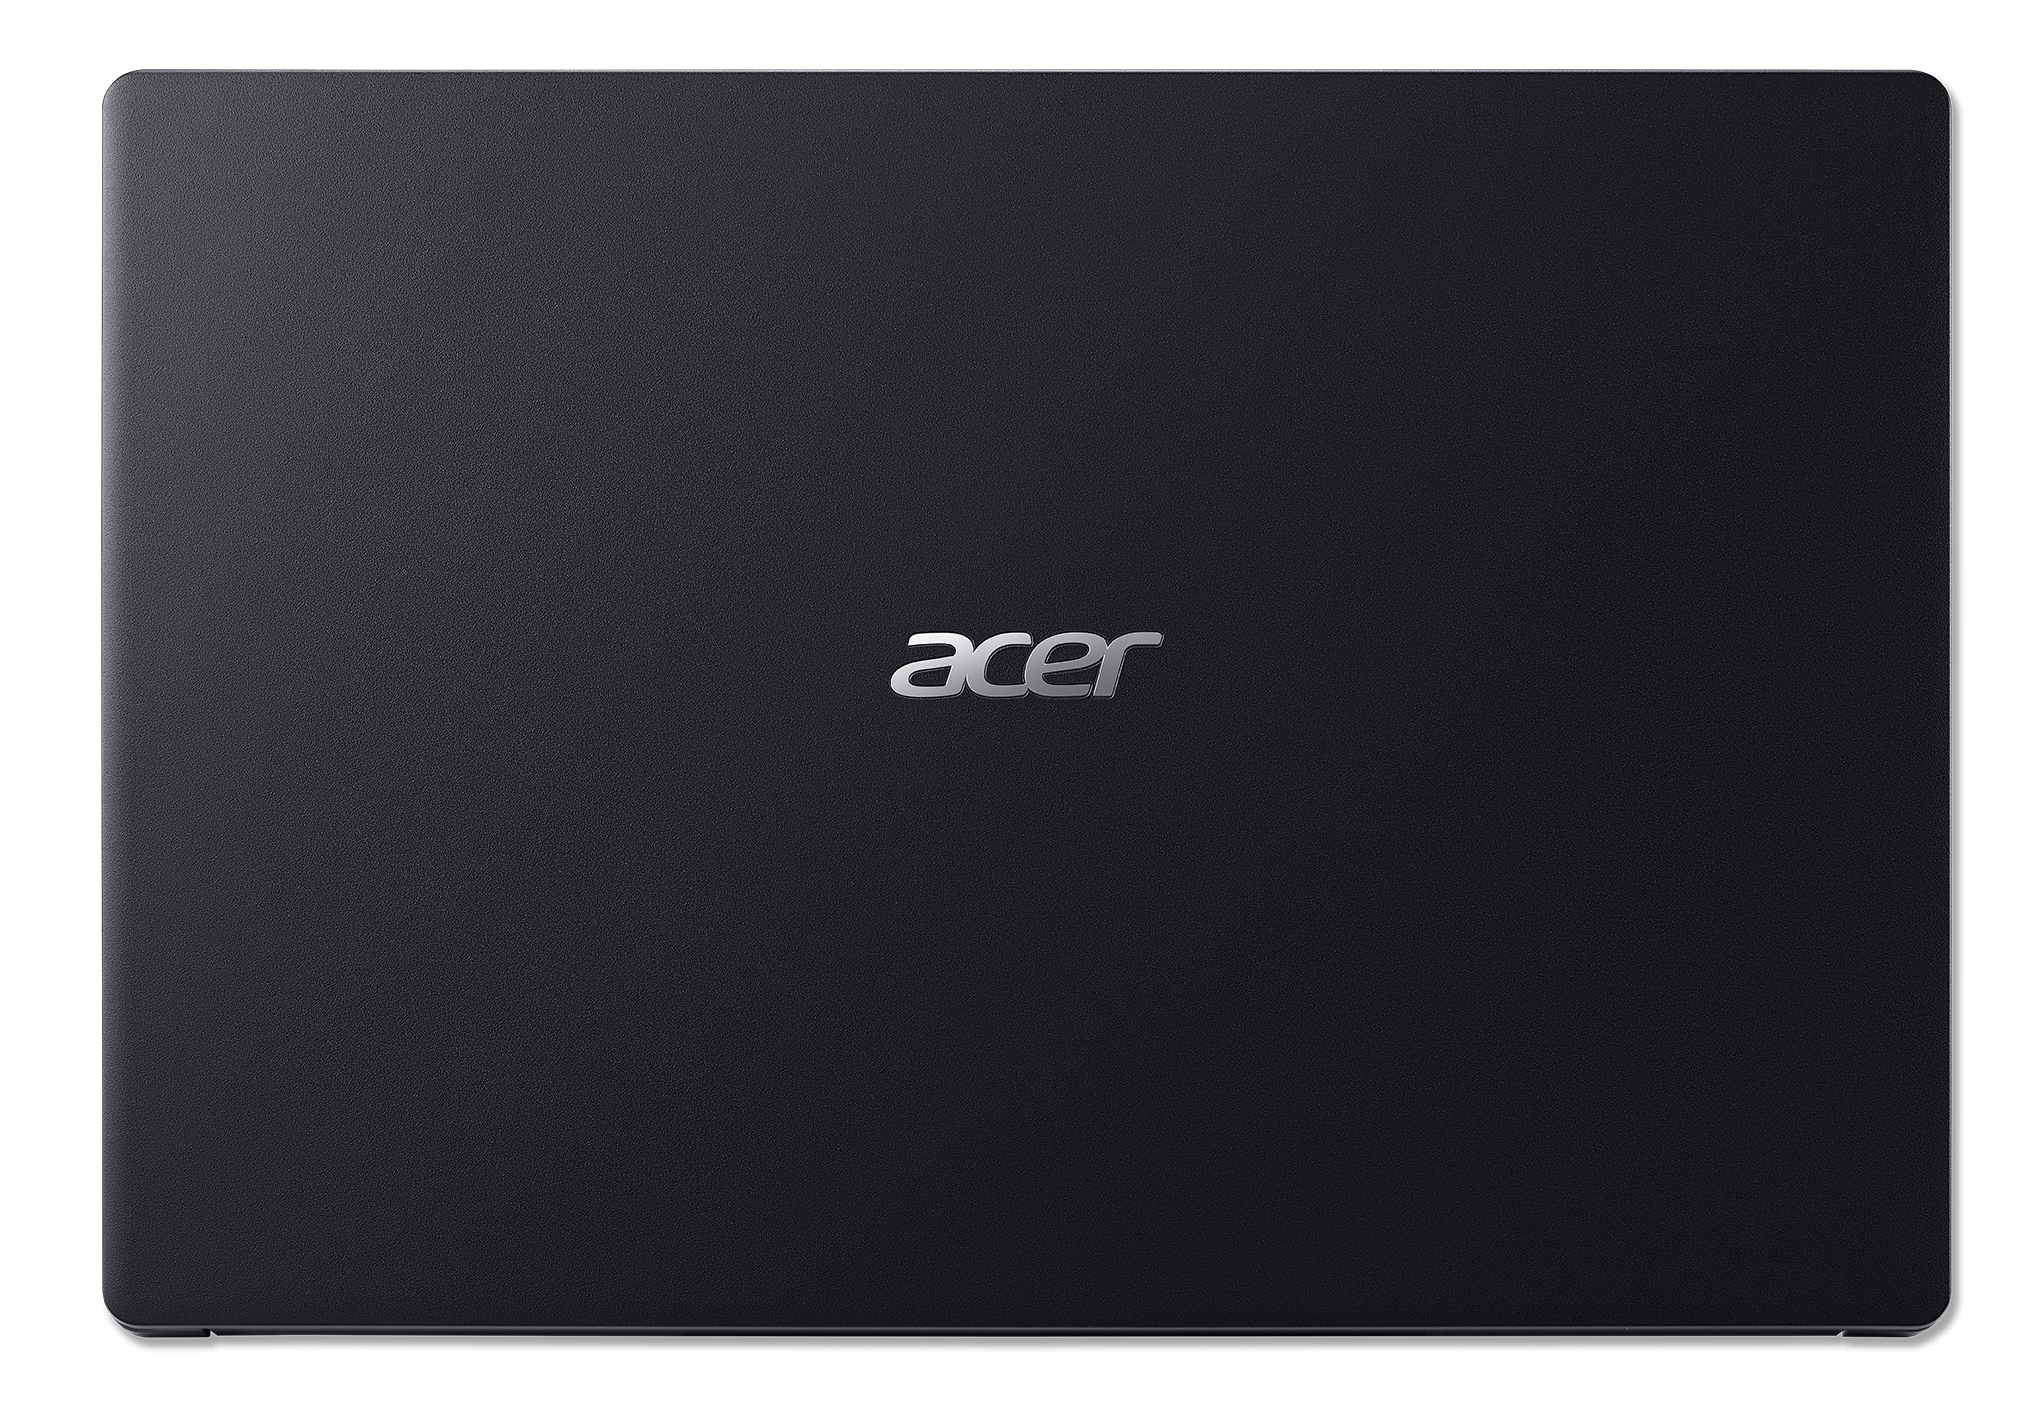 Acer Extensa 15 EX215-31-C8MV, 15.6I FHD ComfyView, Celeron N4020, 4GB DDR4, 128GB PCIe NVMe SSD, UHD Graphics 600, Win10Home S-Mode, QWERTY, Shale Black